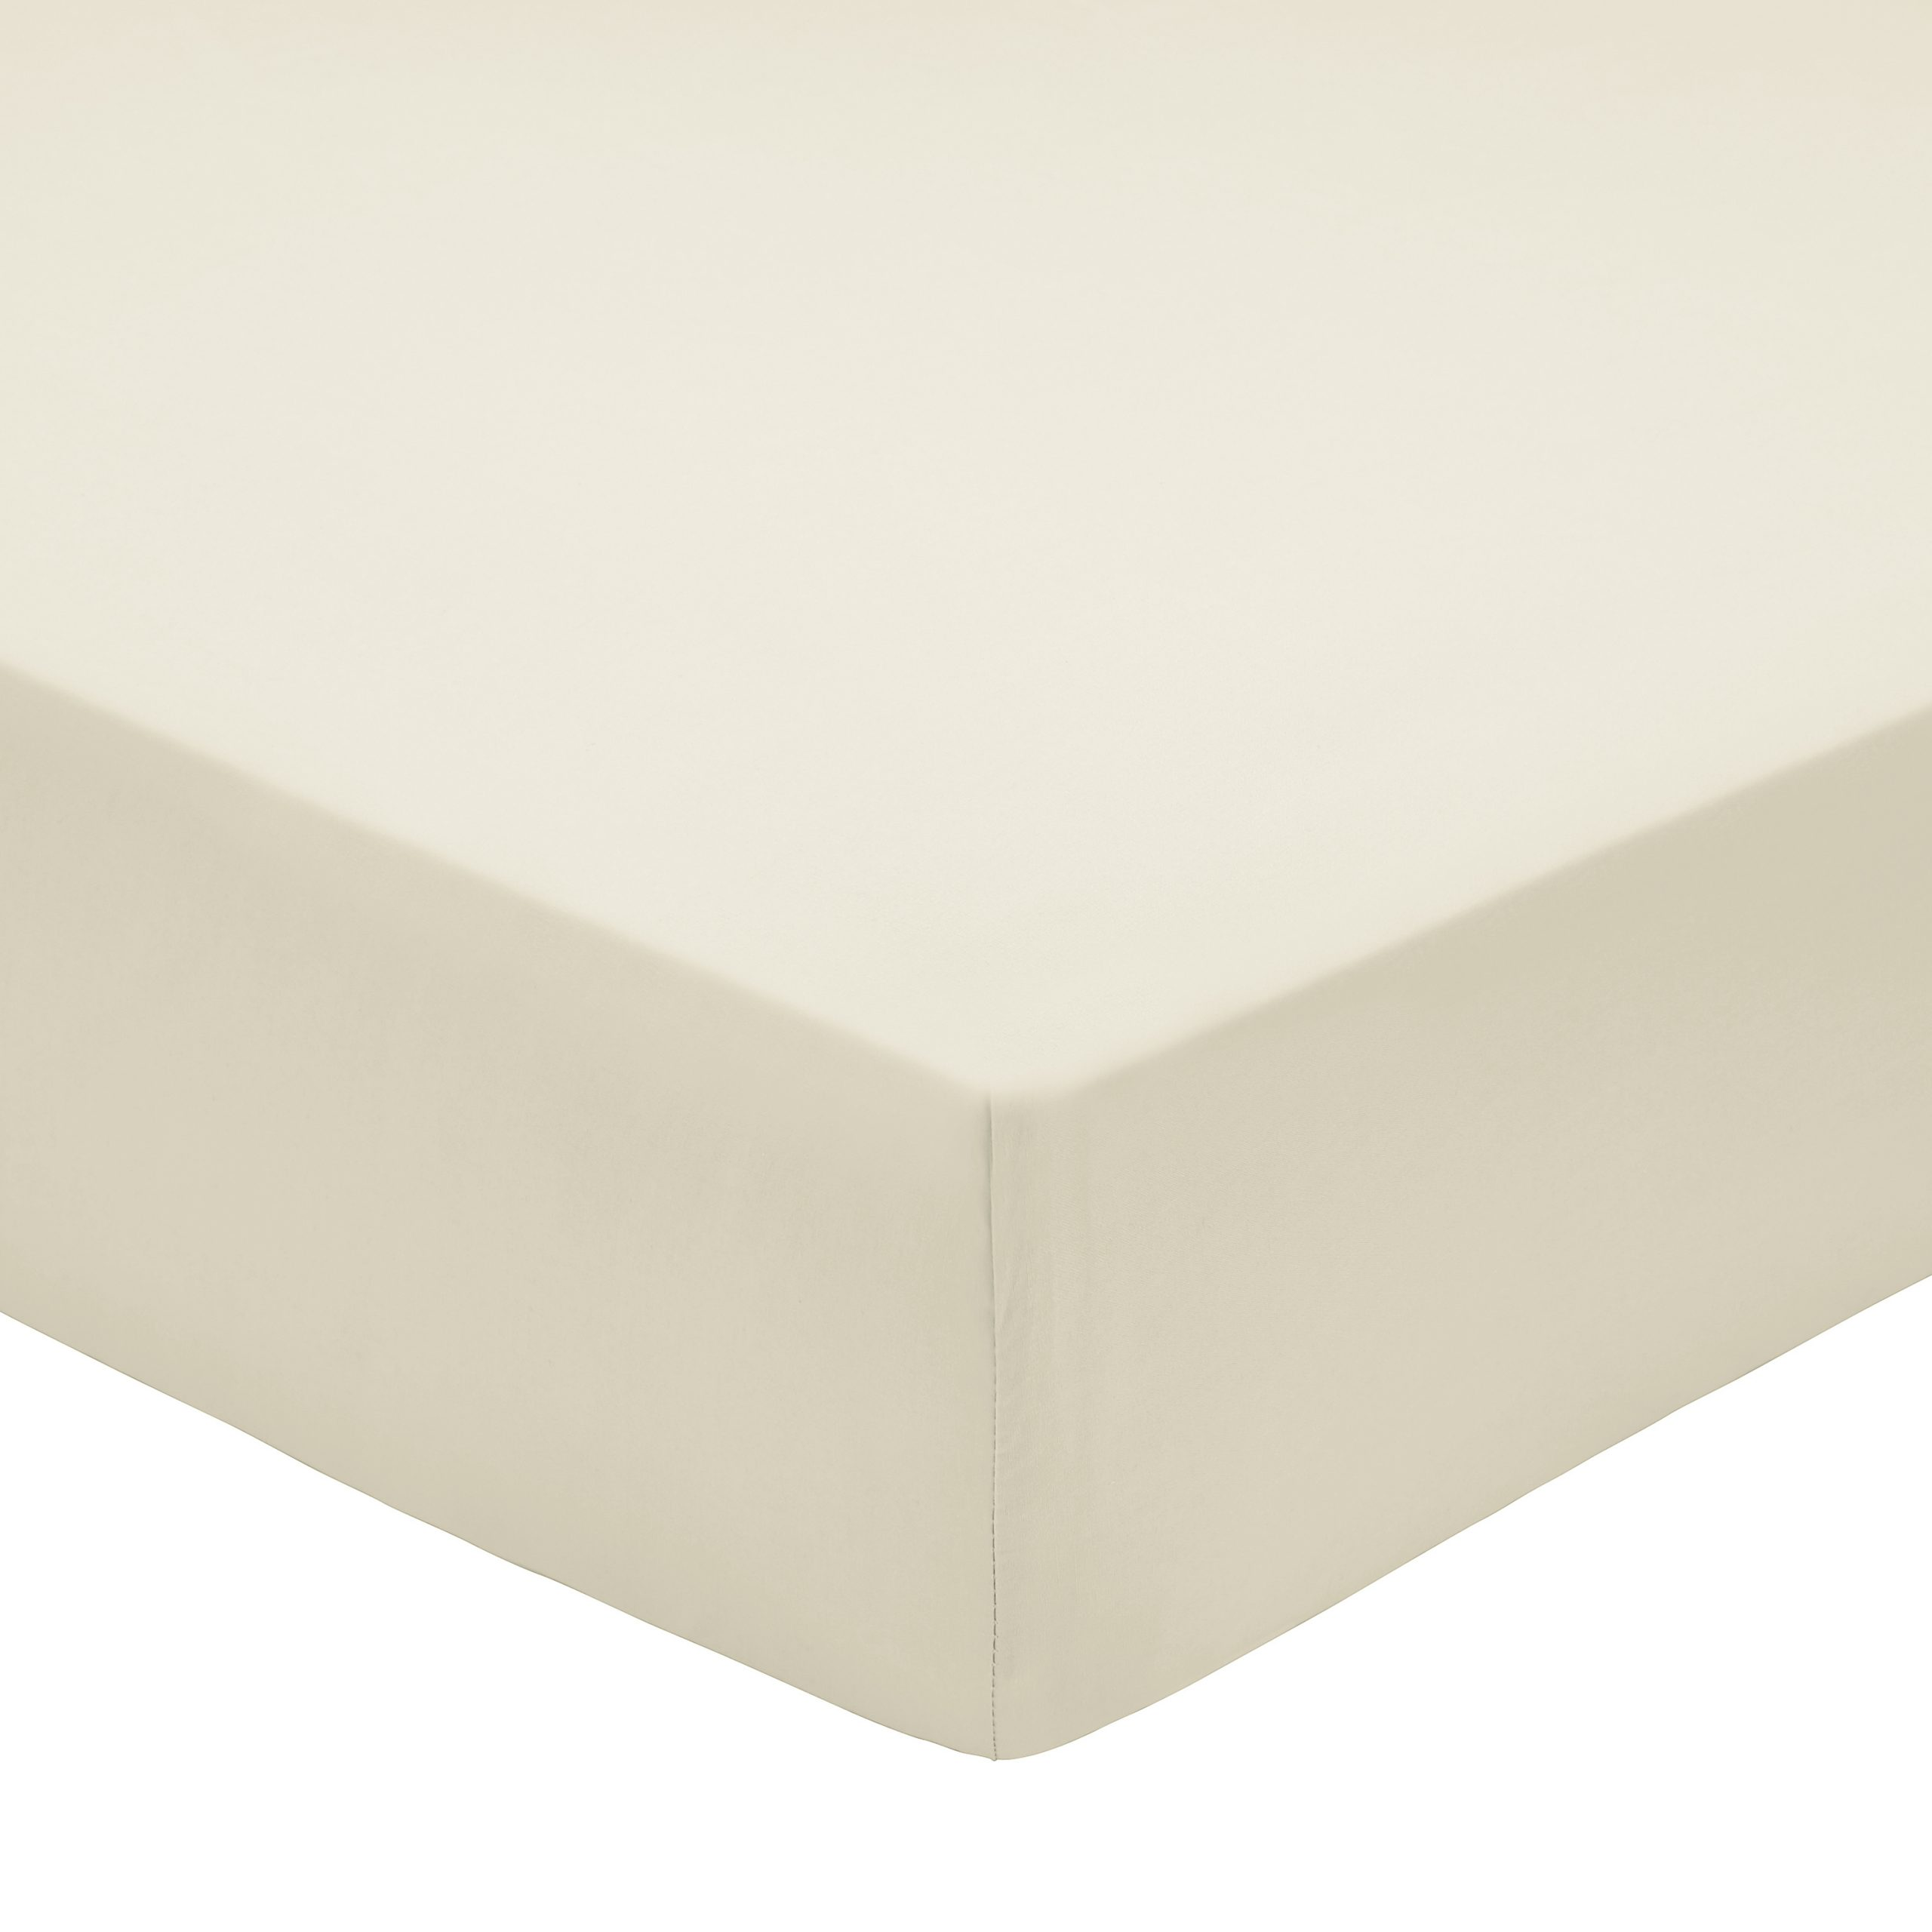 200TC PIMA COTTON FITTED SHEET KING SIZE CASHMERE